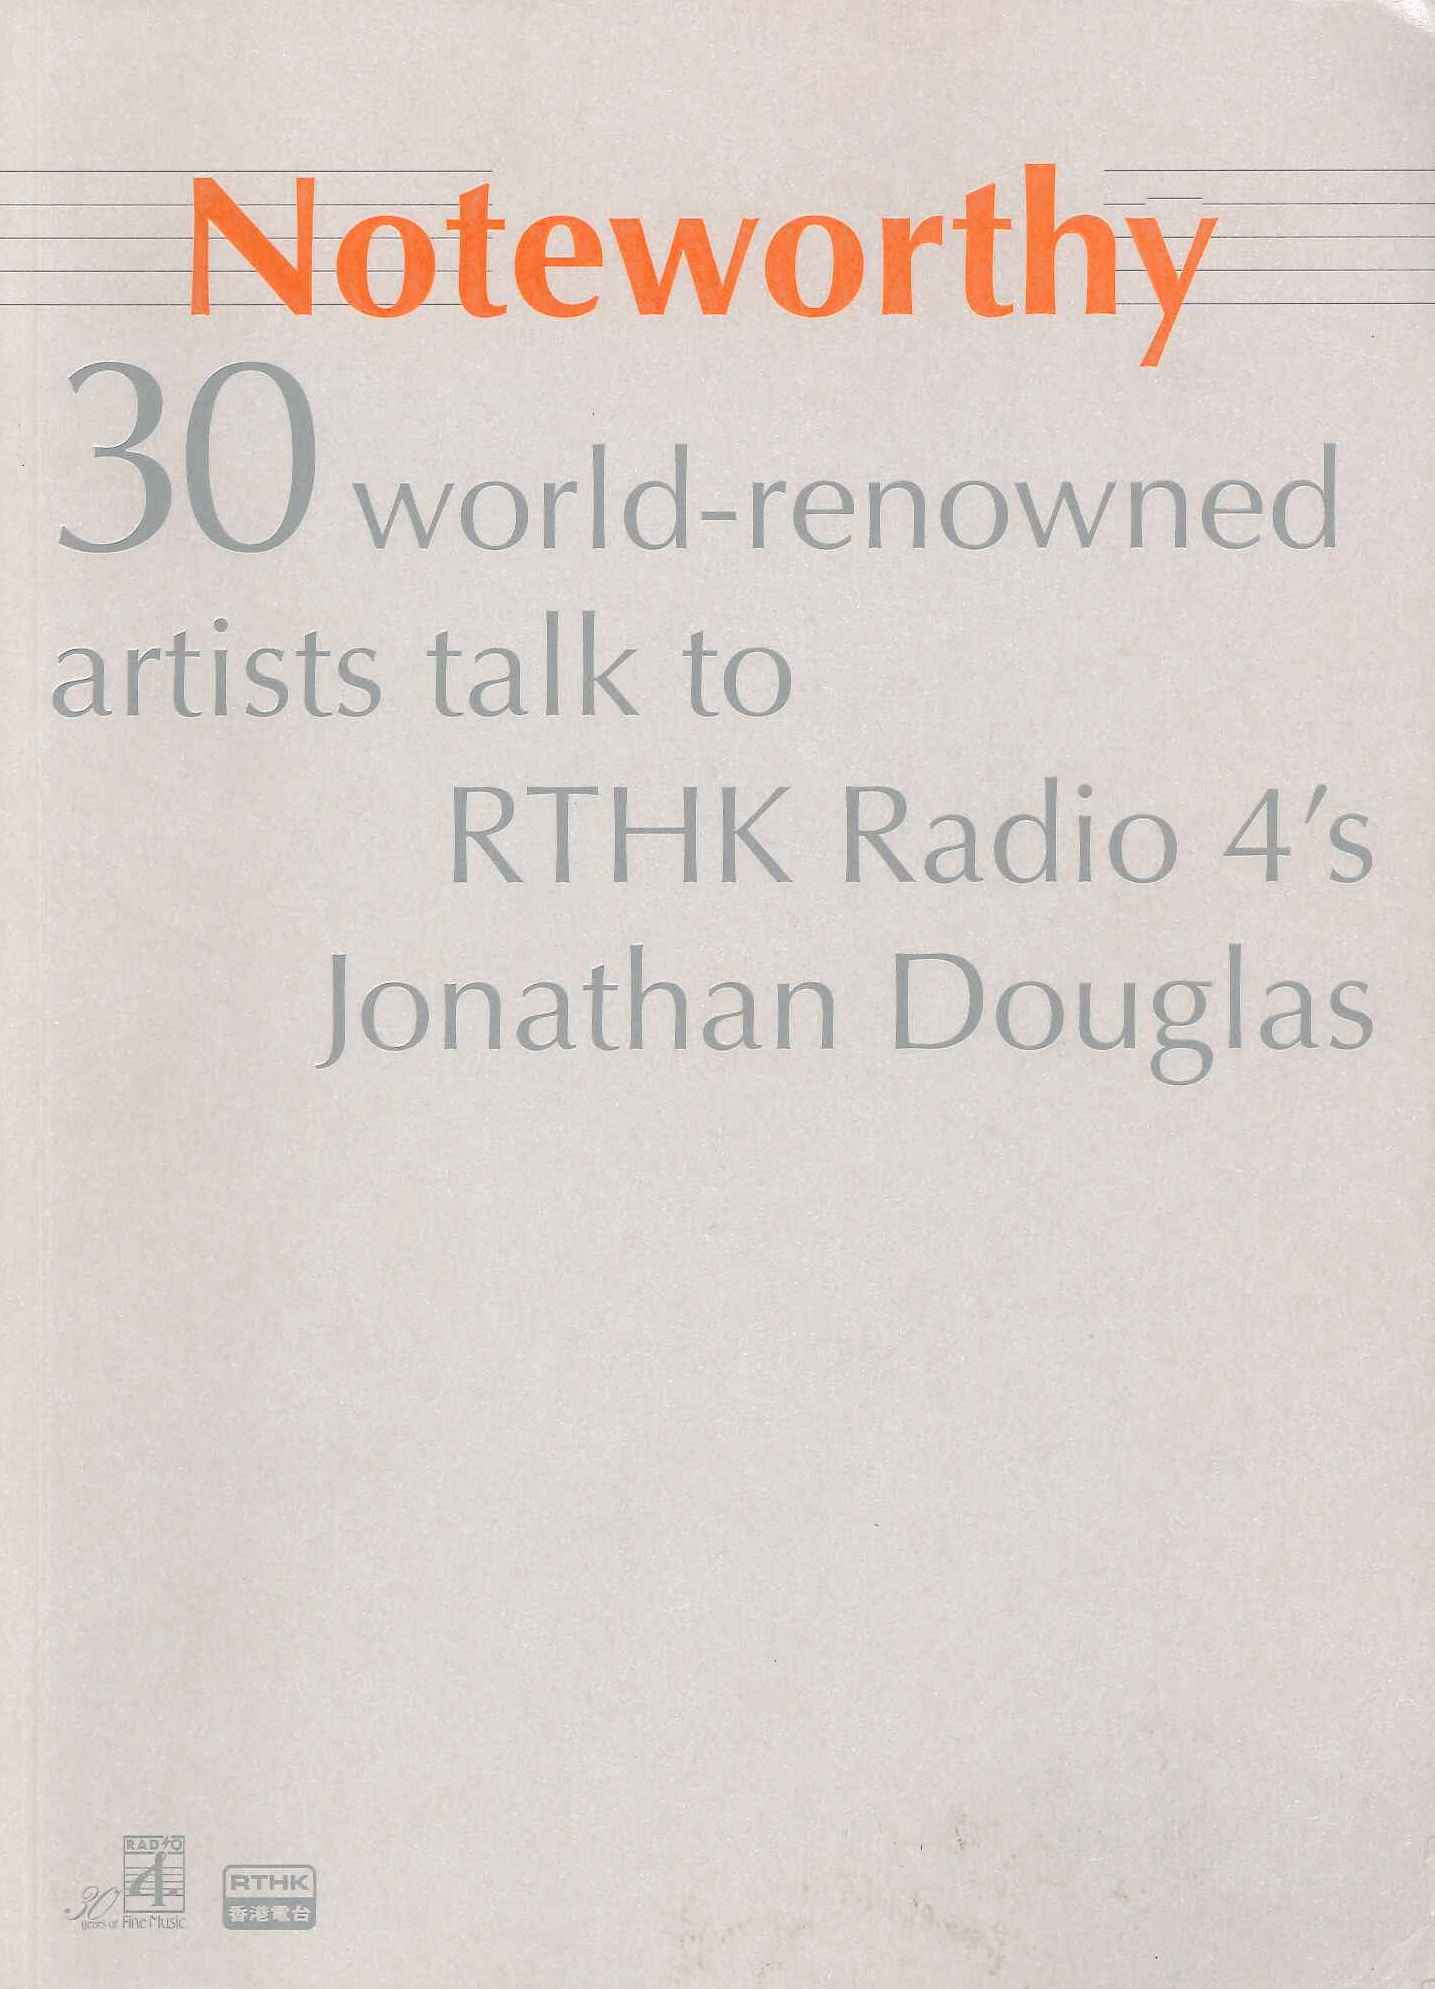 NOTEWORTHY: 30 WORLD-RENOWNED ARTISTS TALK TO RTHK RADIO 4